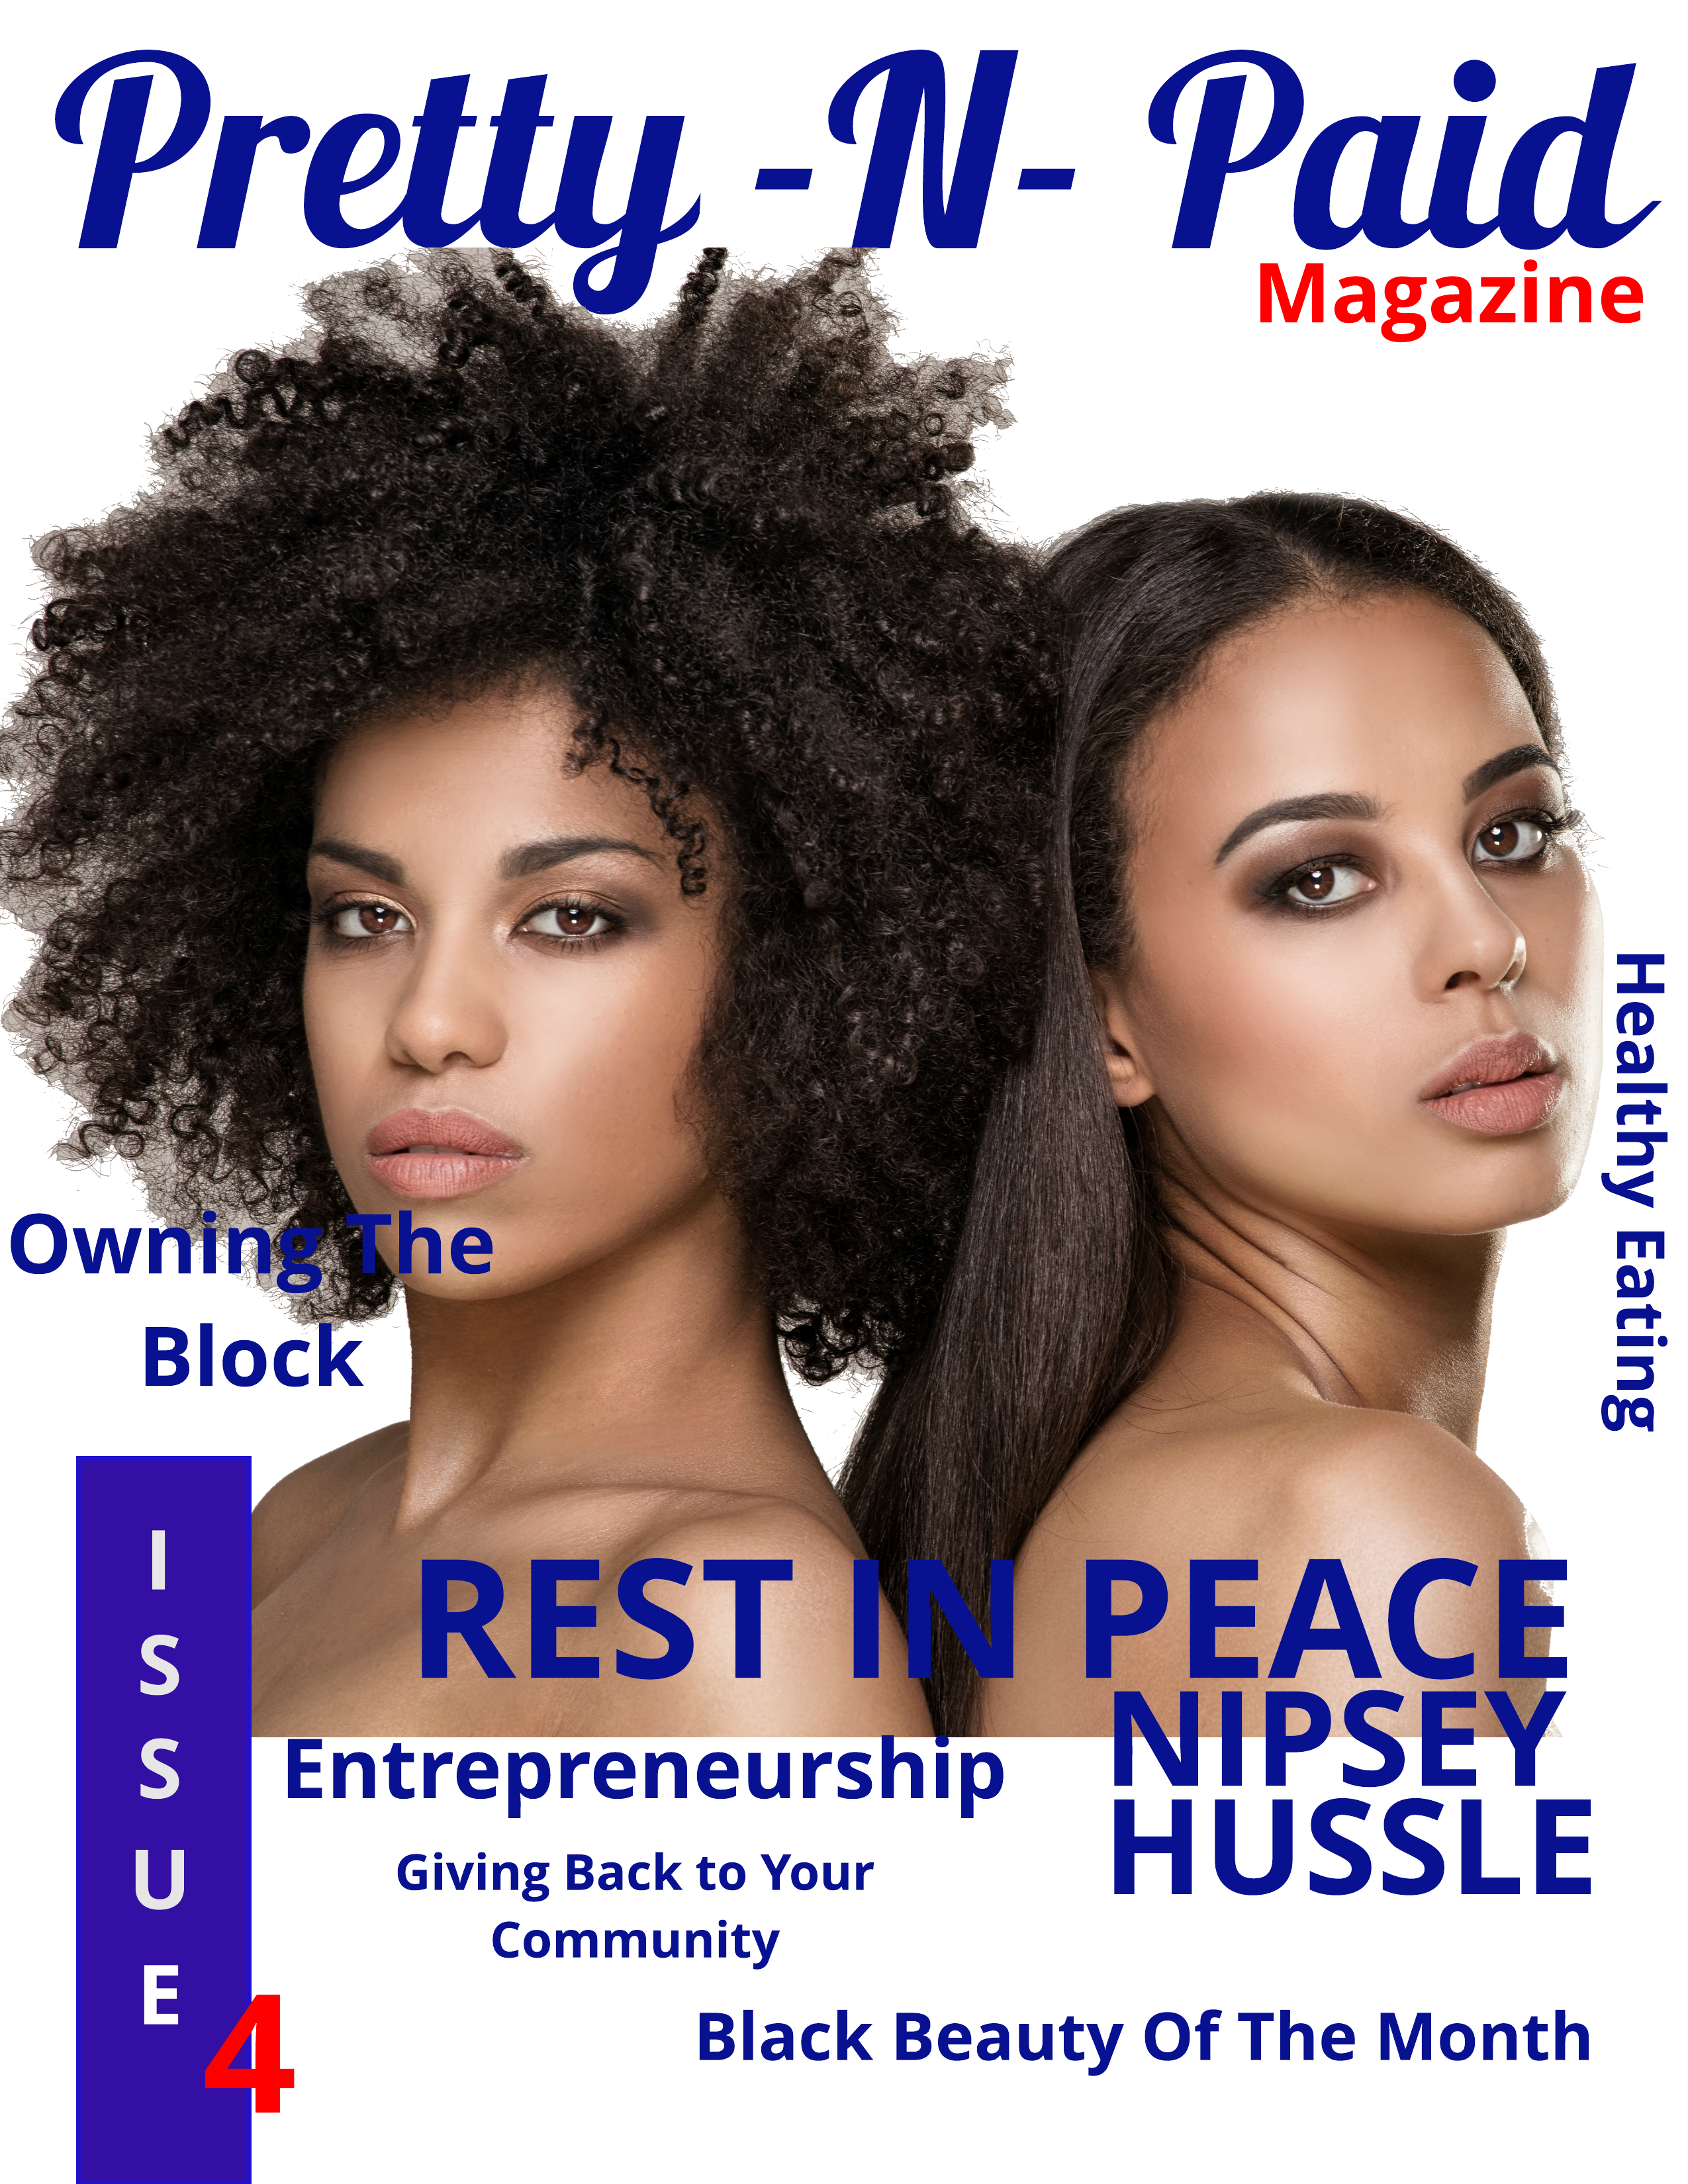 pnpmcover4